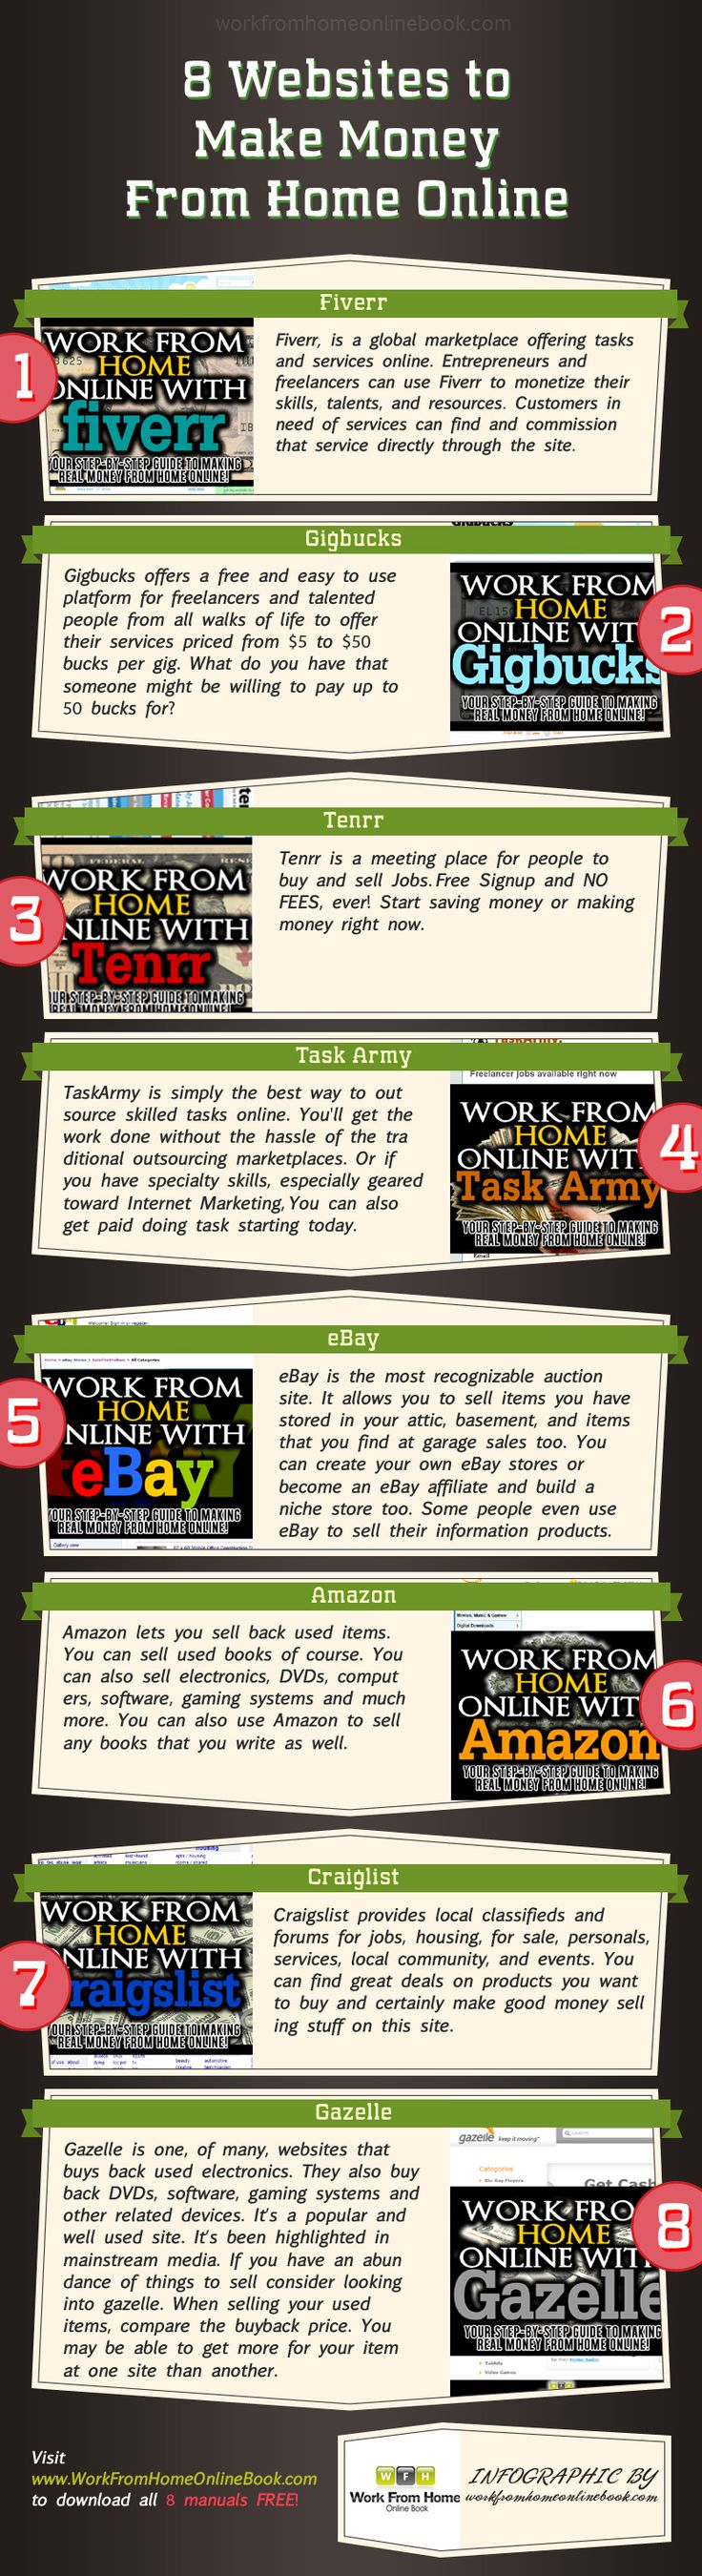 8-ways-to-earn-money-from-home-infographic http://nextlevelinternetmarketing.com